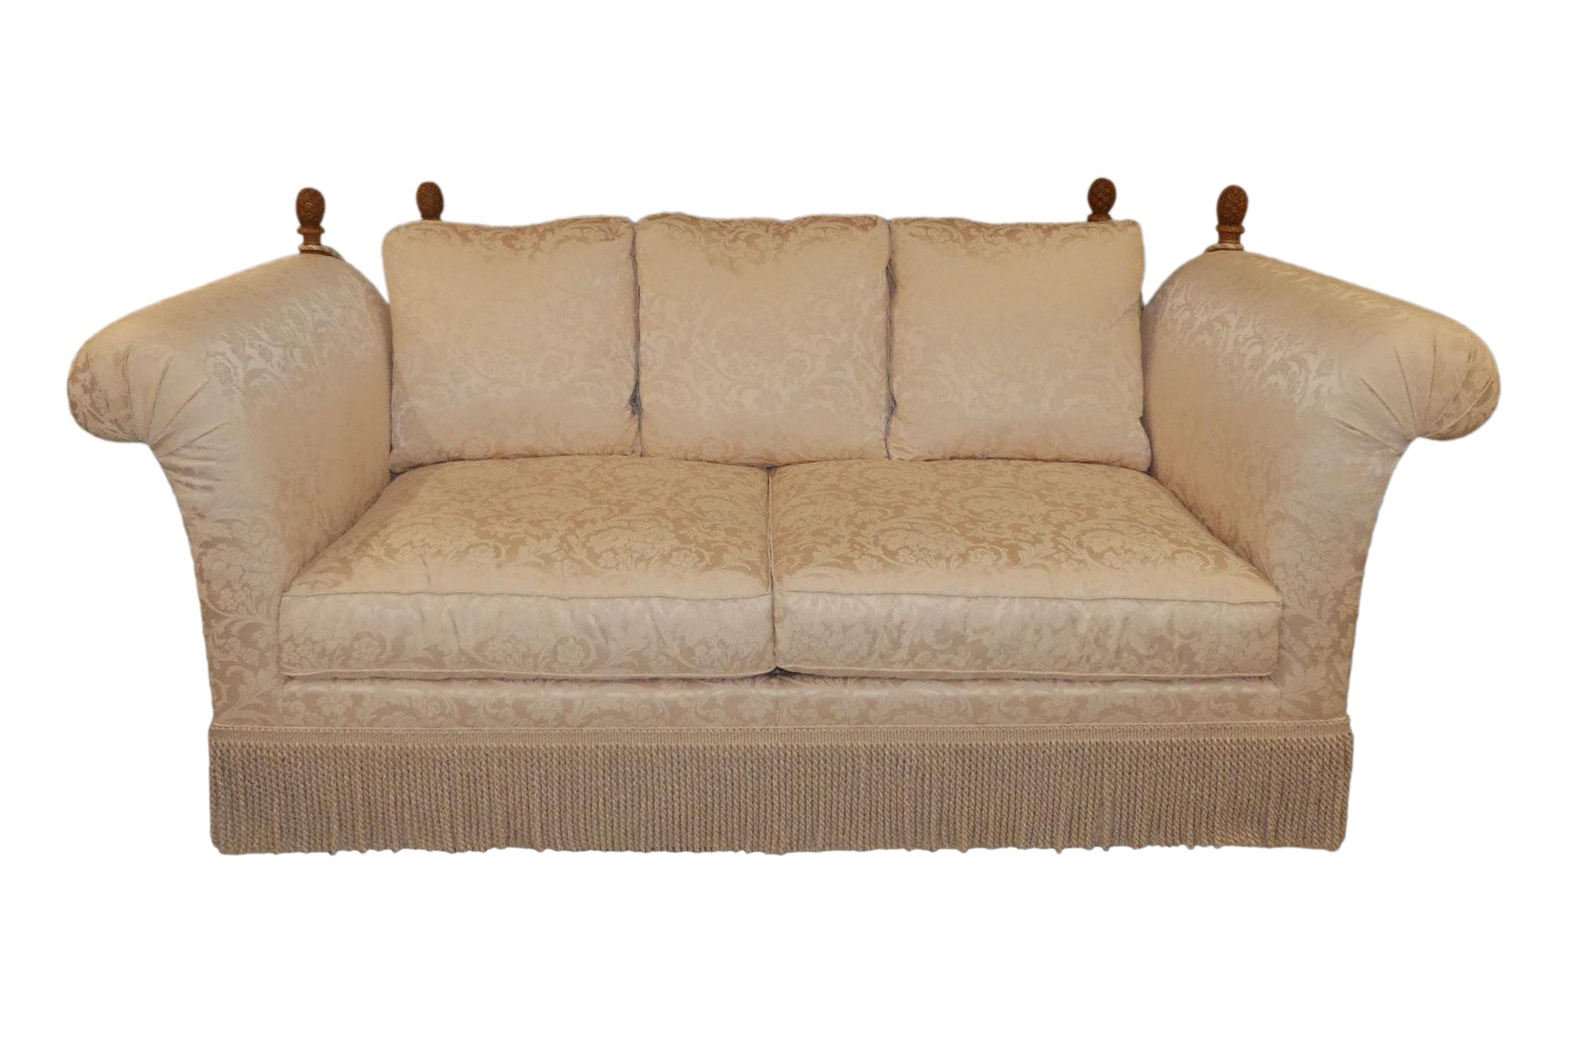 SOLD Taylor King Rolled Arm Knoll-Style Sofa